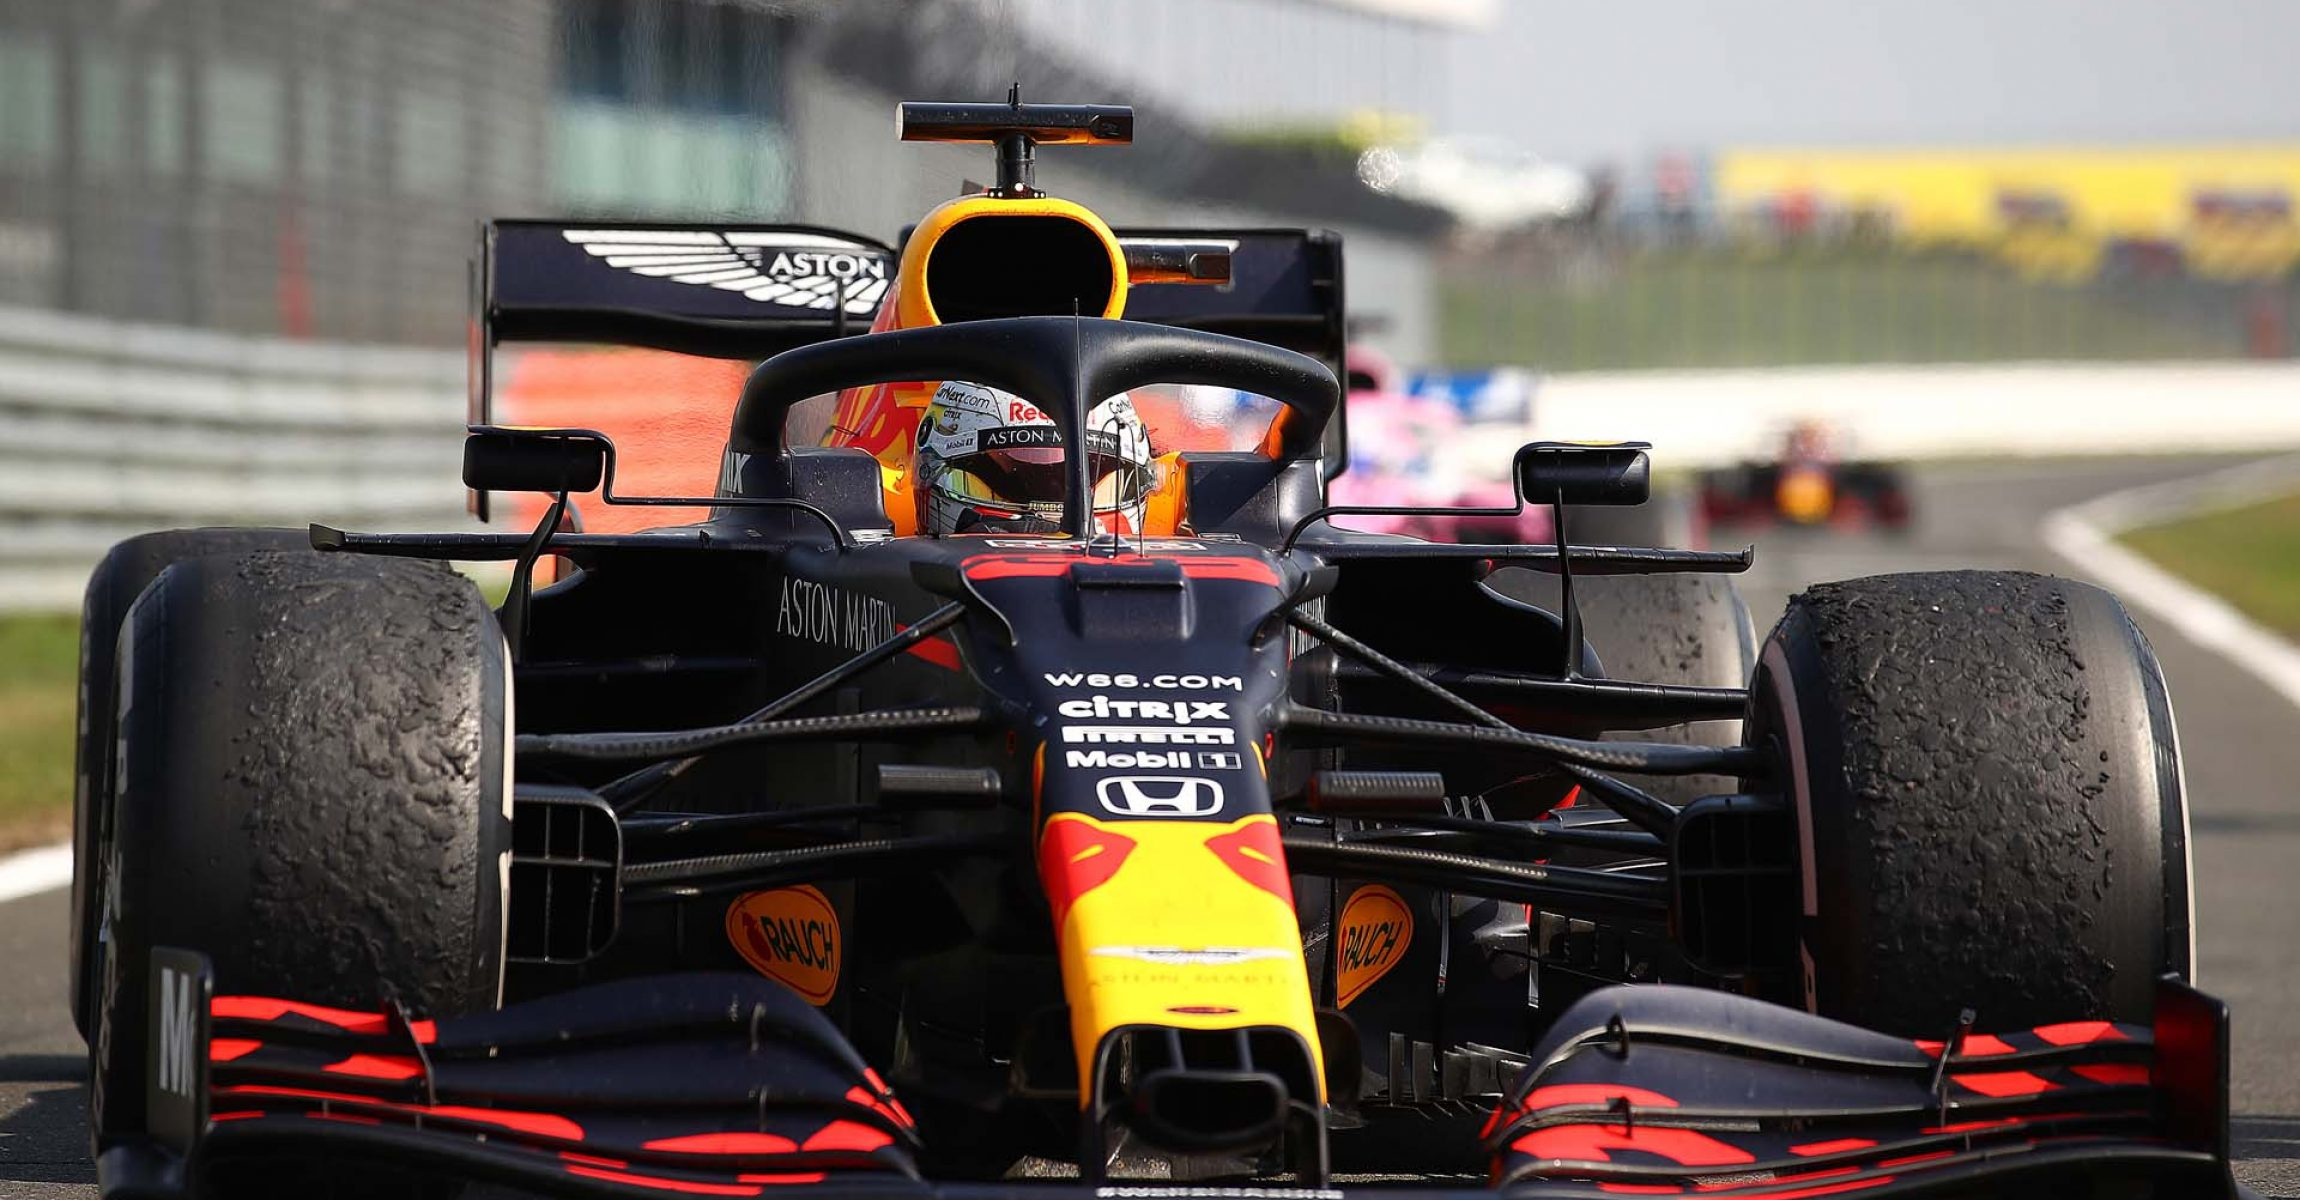 NORTHAMPTON, ENGLAND - AUGUST 09: Race winner Max Verstappen of Netherlands and Red Bull Racing arrives in parc ferme during the F1 70th Anniversary Grand Prix at Silverstone on August 09, 2020 in Northampton, England. (Photo by Bryn Lennon/Getty Images)